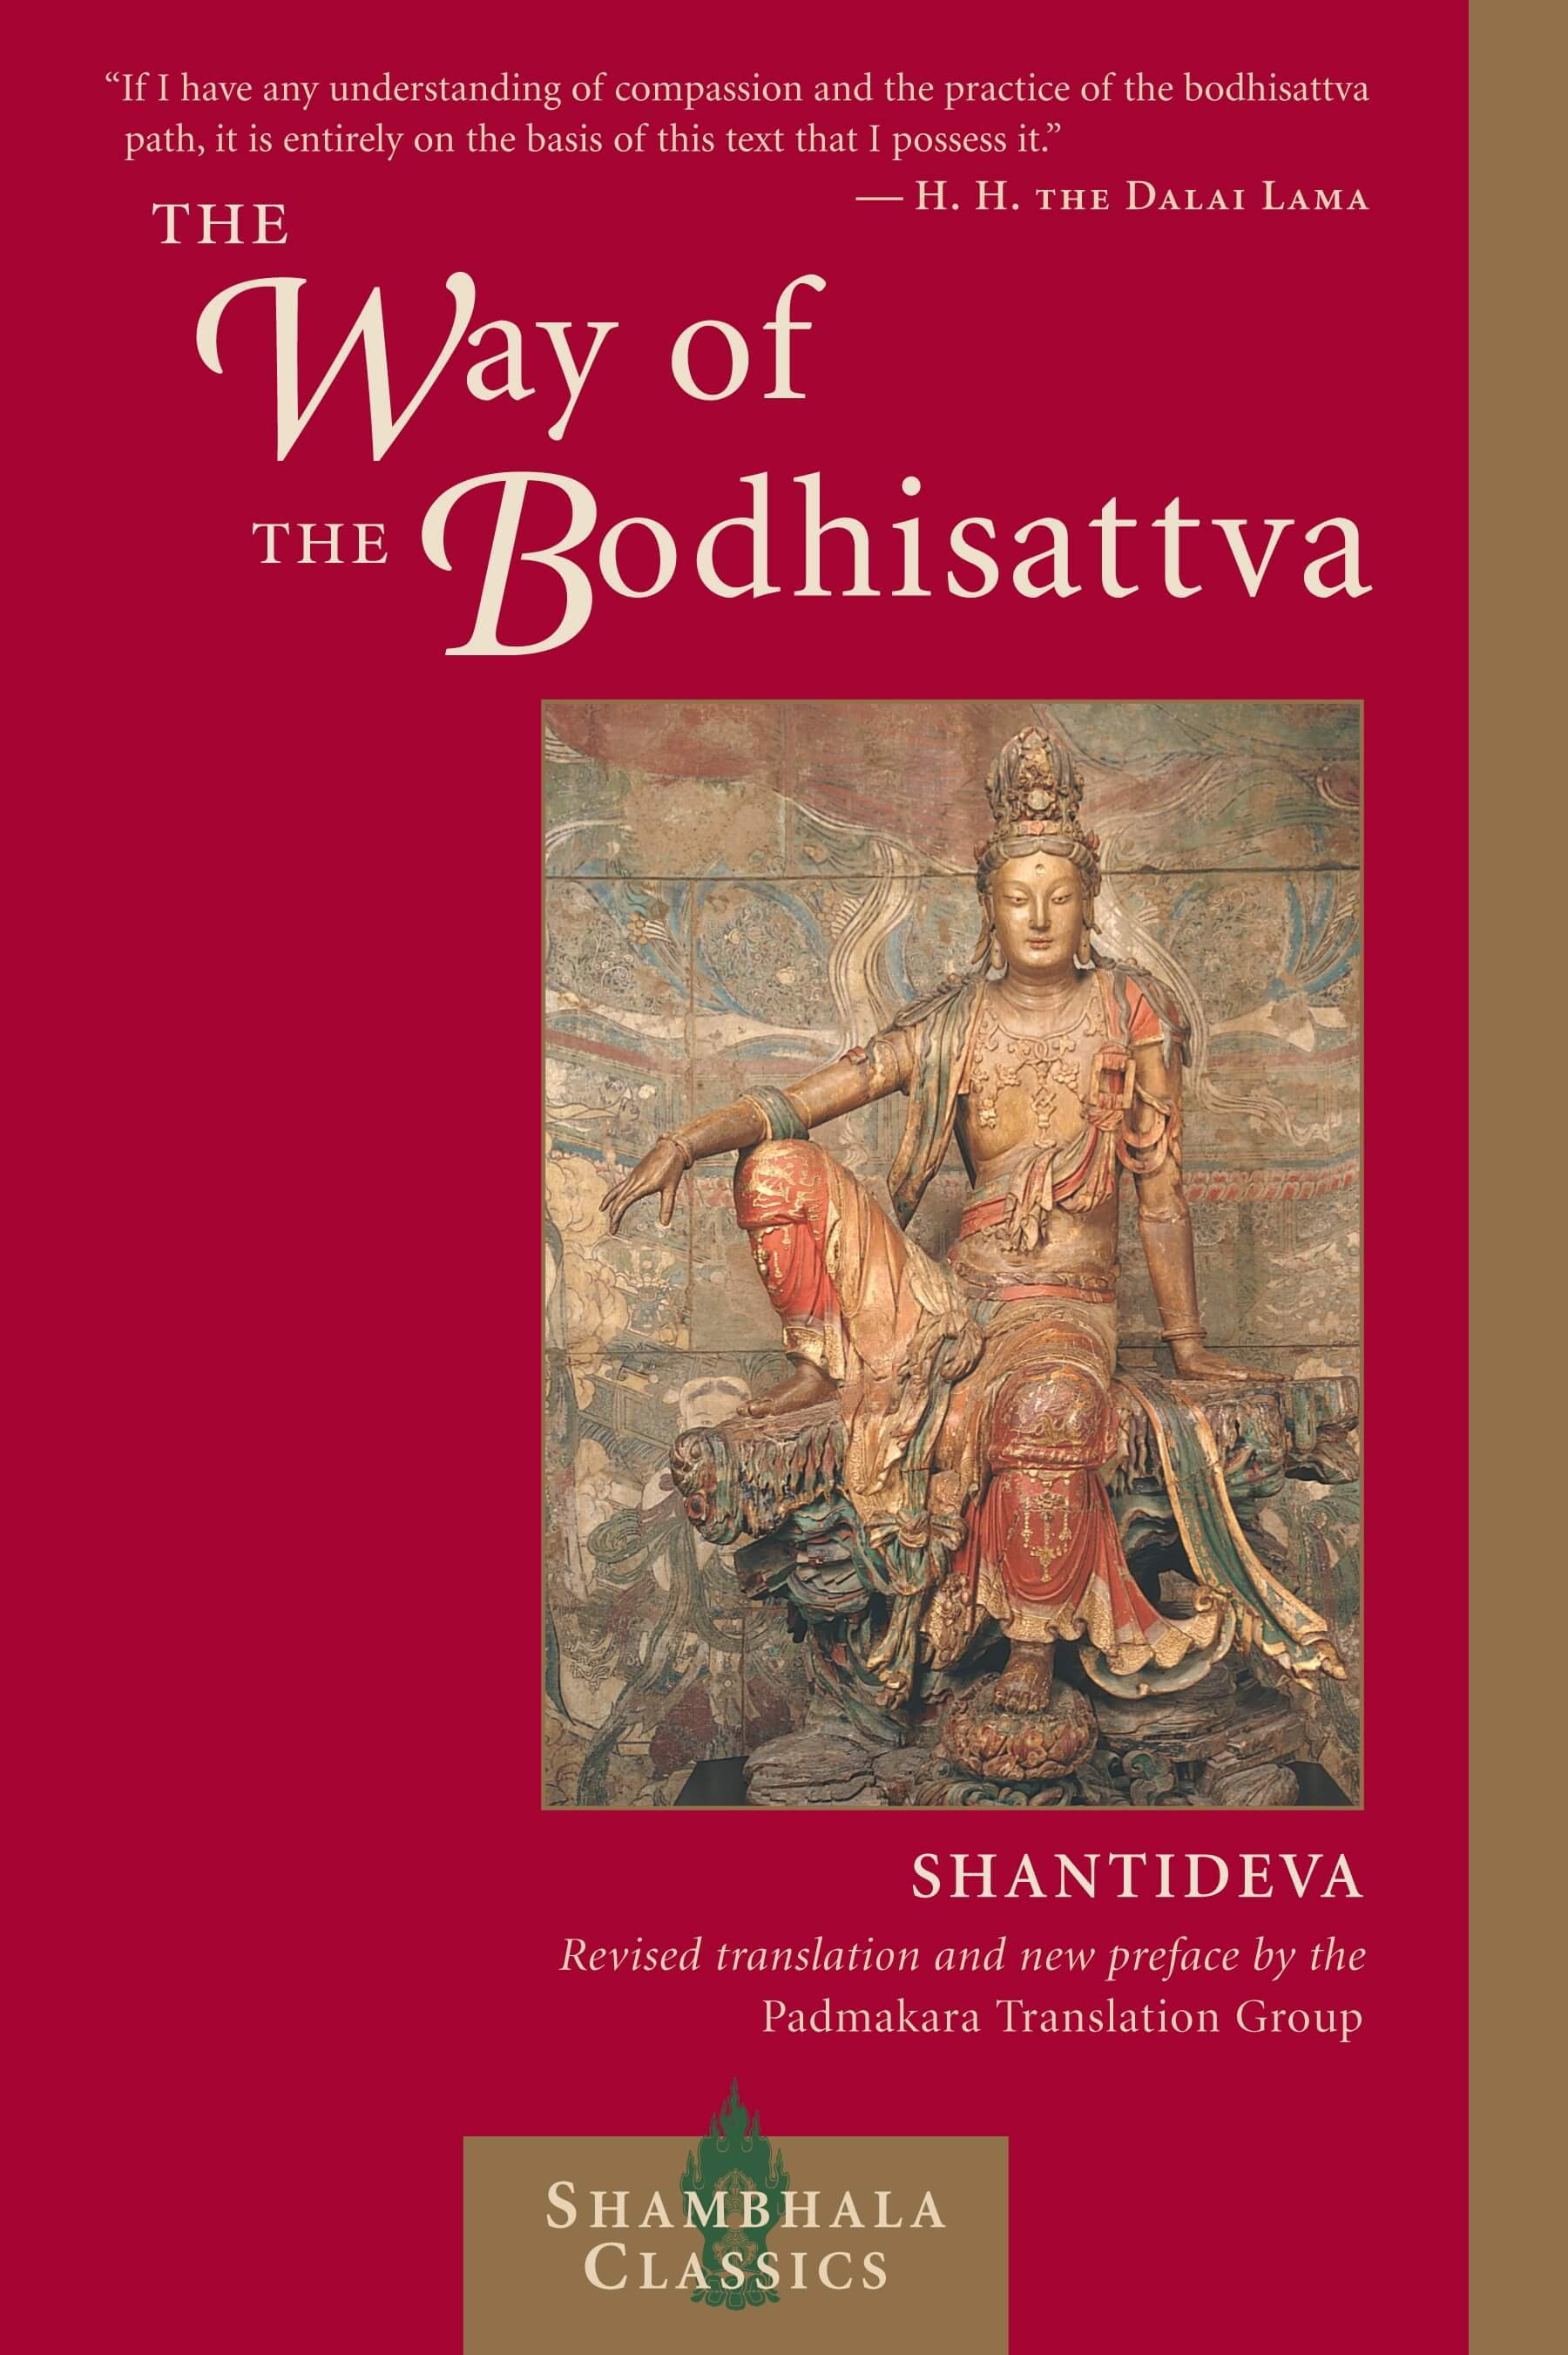 Translating the Way of the Bodhisattva